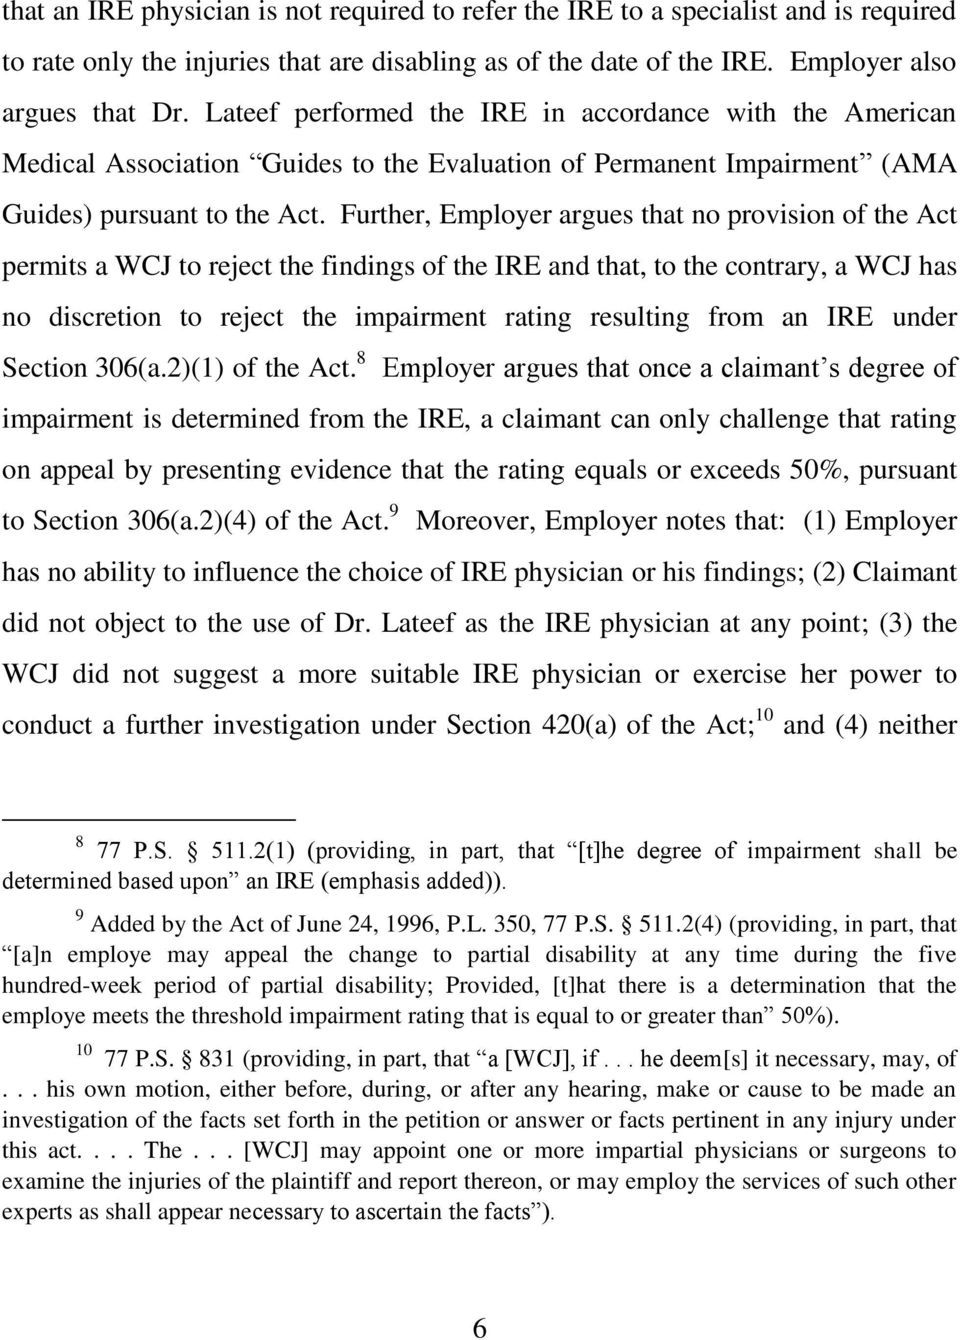 Further, Employer argues that no provision of the Act permits a WCJ to reject the findings of the IRE and that, to the contrary, a WCJ has no discretion to reject the impairment rating resulting from